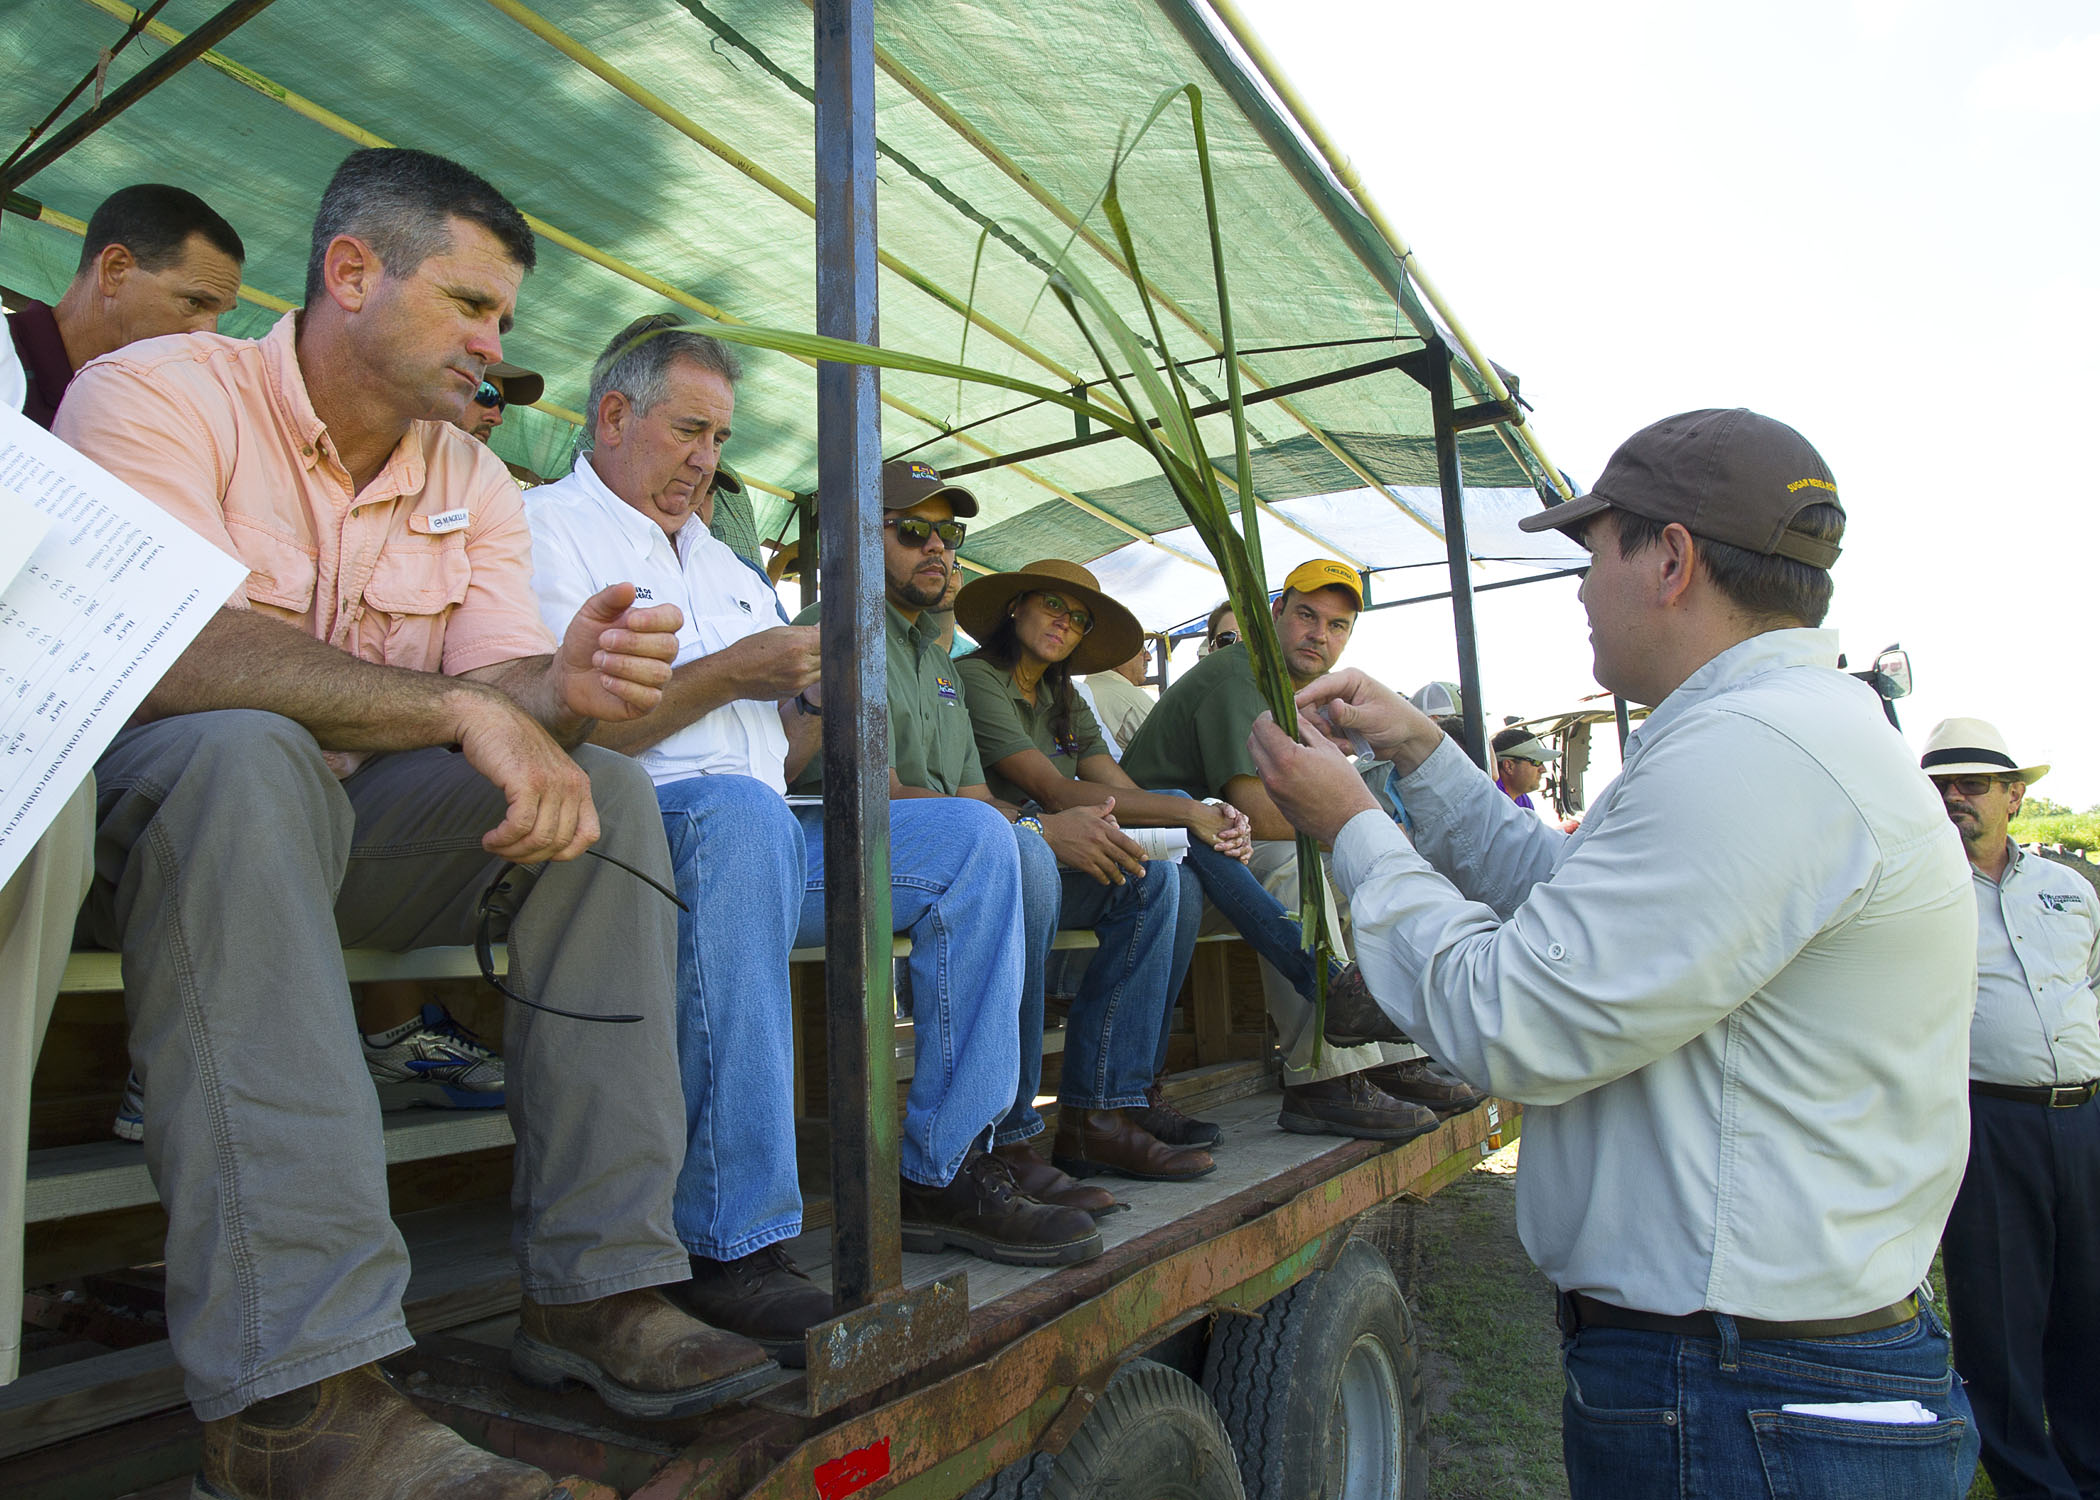 Infrequent insect, new weed highlight sugar field day